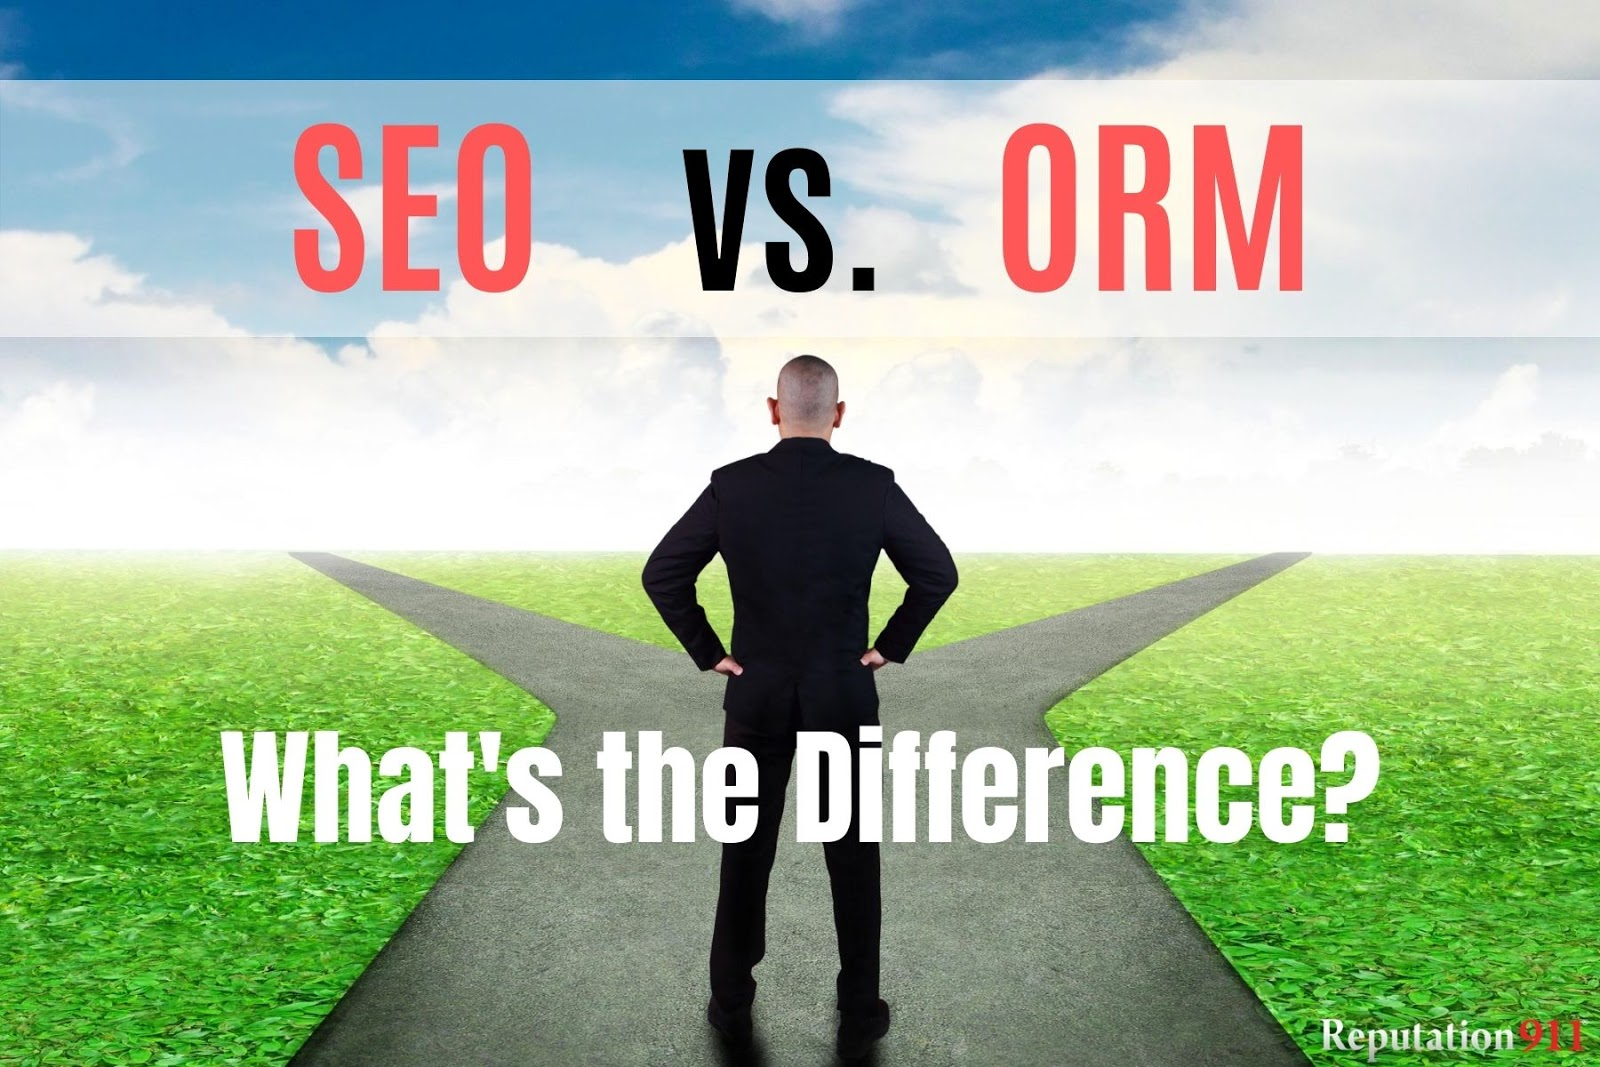 SEO vs. ORM What's the Difference